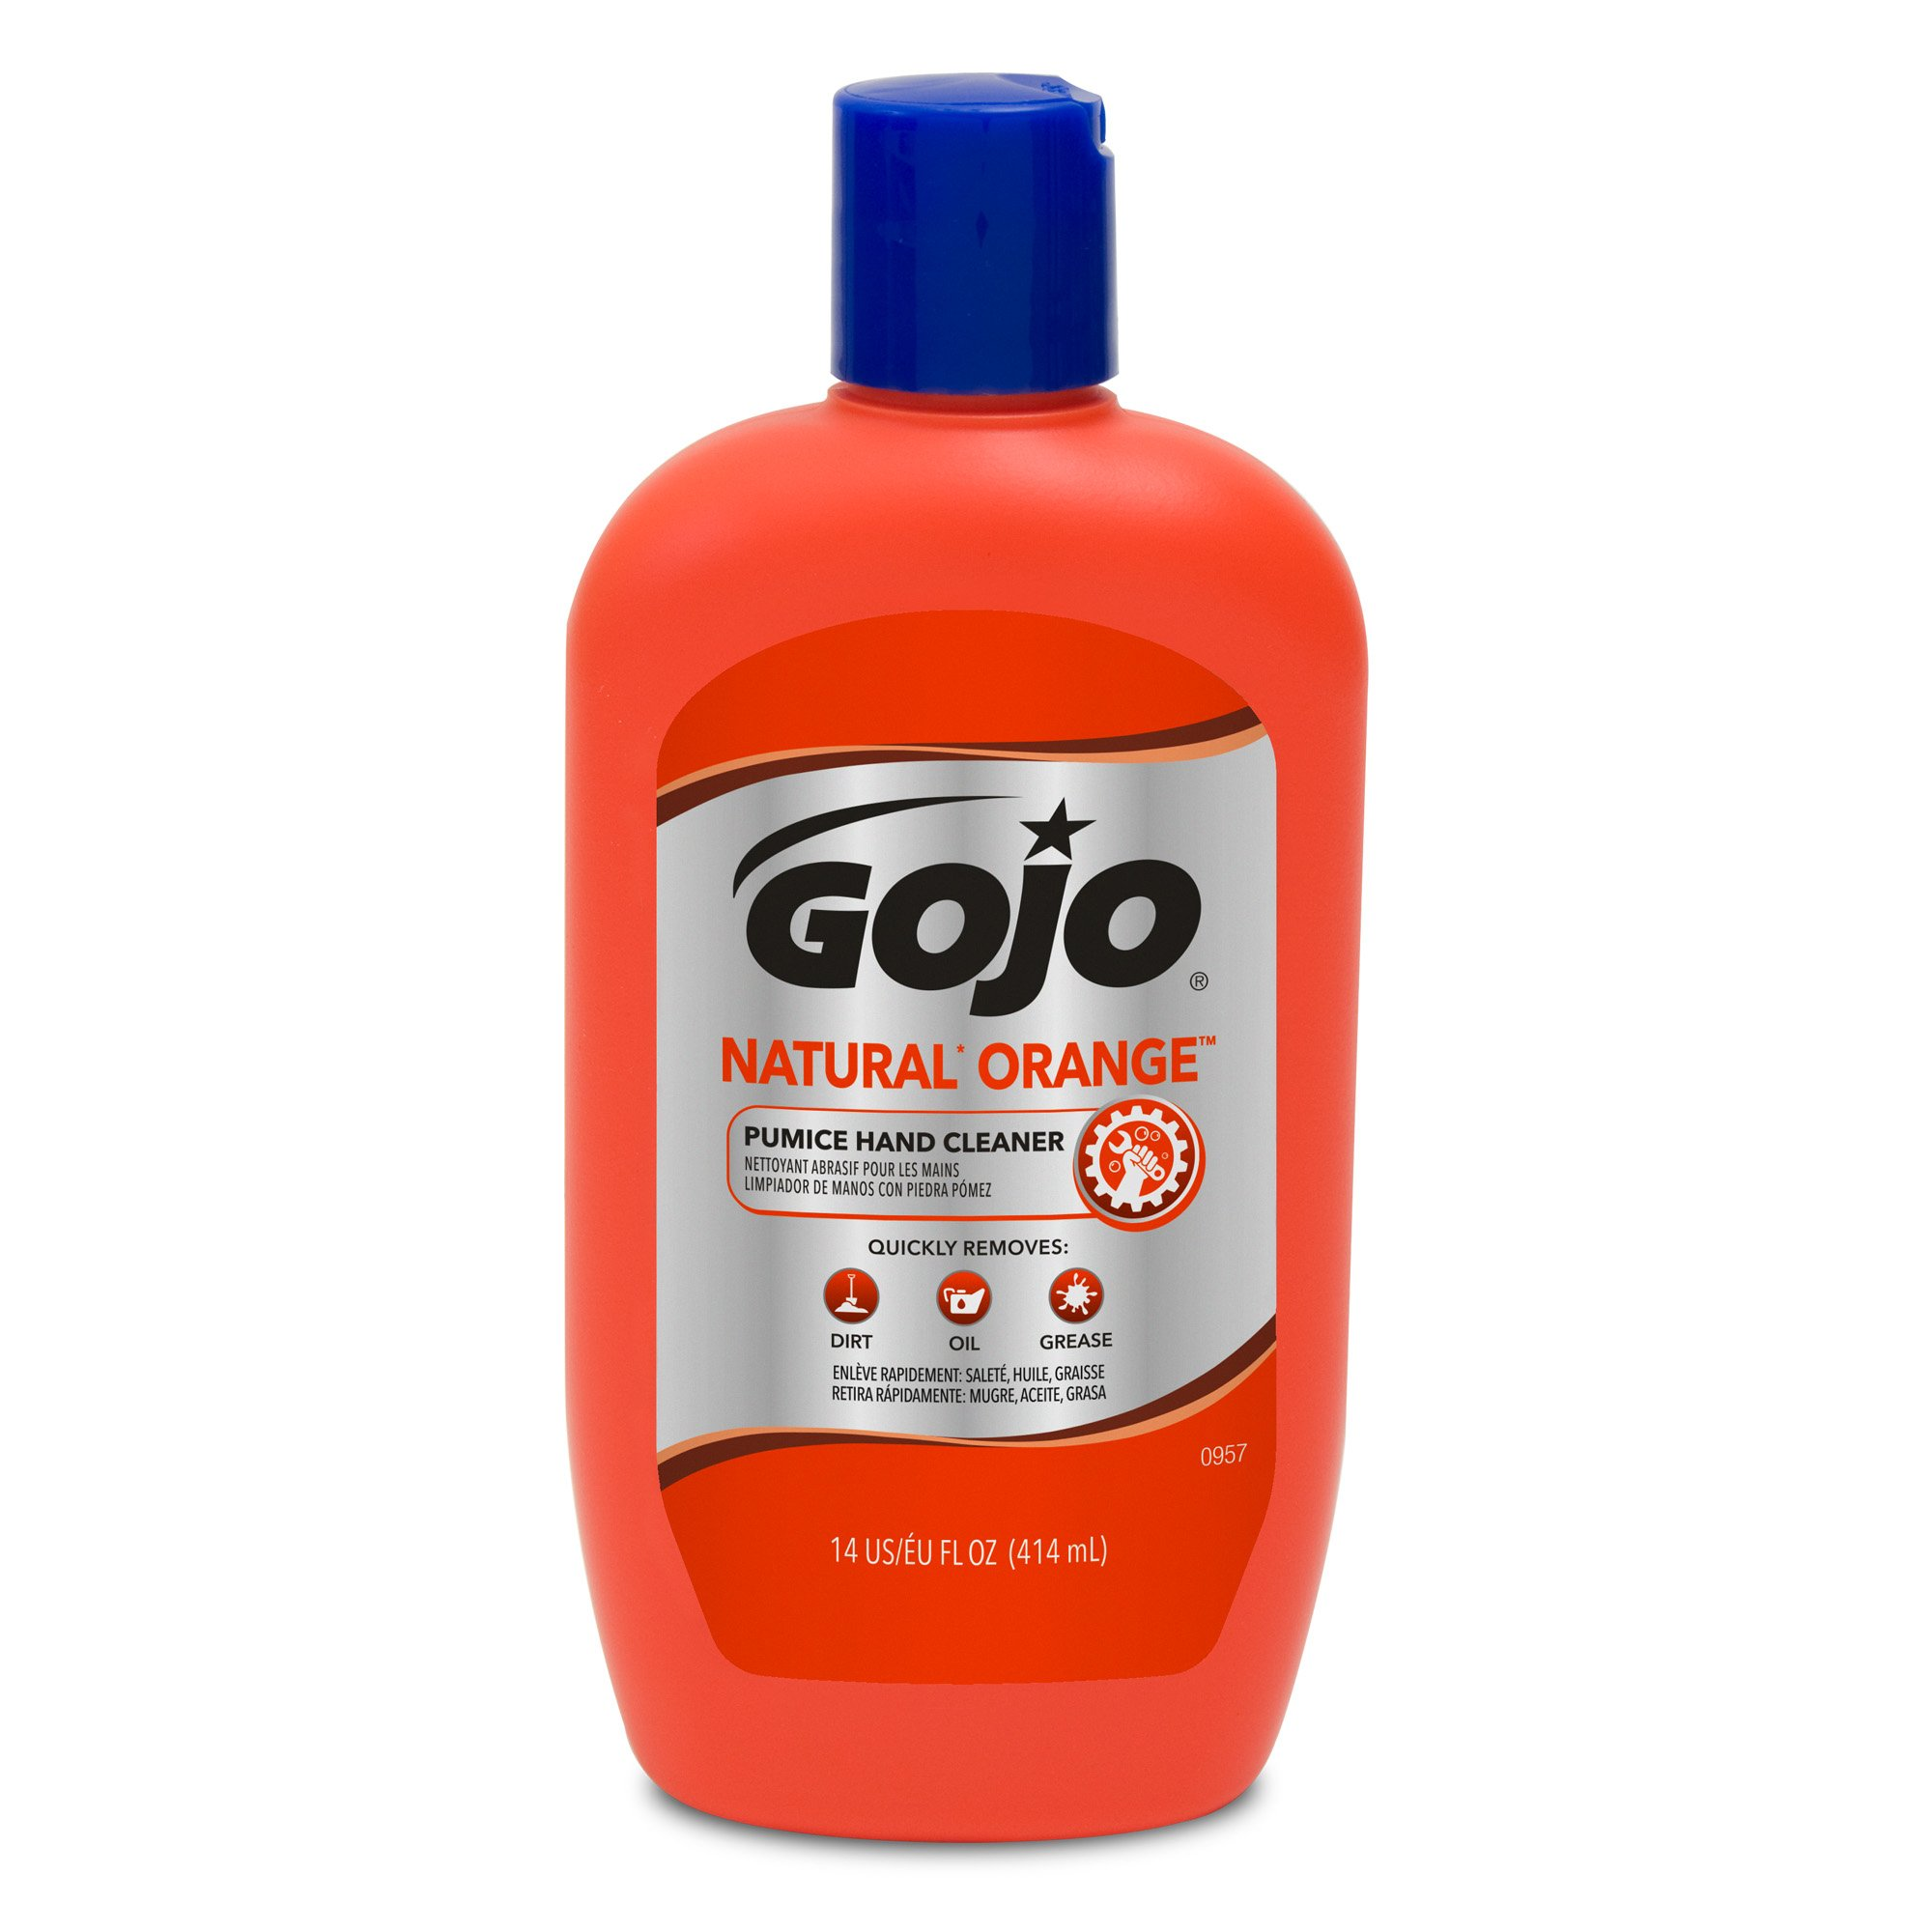 GOJO NATURAL ORANGE Pumice Hand Cleaner, 14 fl oz Quick-Acting Lotion Hand Cleaner Flip Cap Squeeze Bottles (Case of 12) - 0957-12 by Gojo (Image #2)